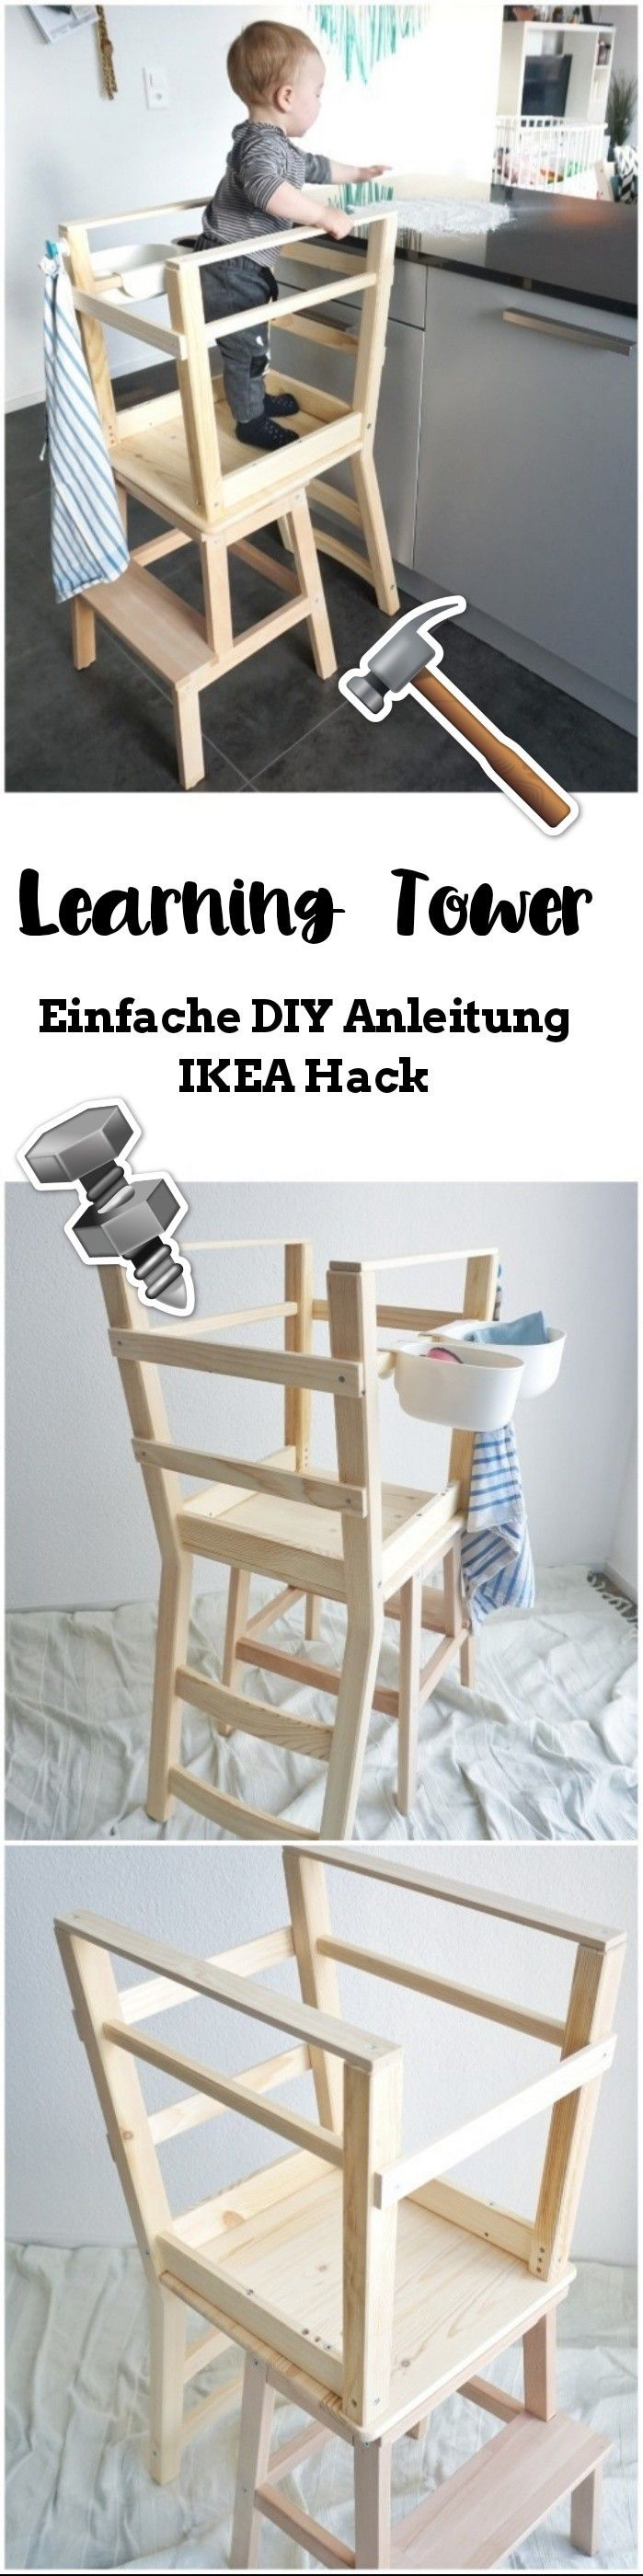 eine einfache learning tower lernturm bauanleiting aus den zwei ikea m bel bekv m und ivar. Black Bedroom Furniture Sets. Home Design Ideas